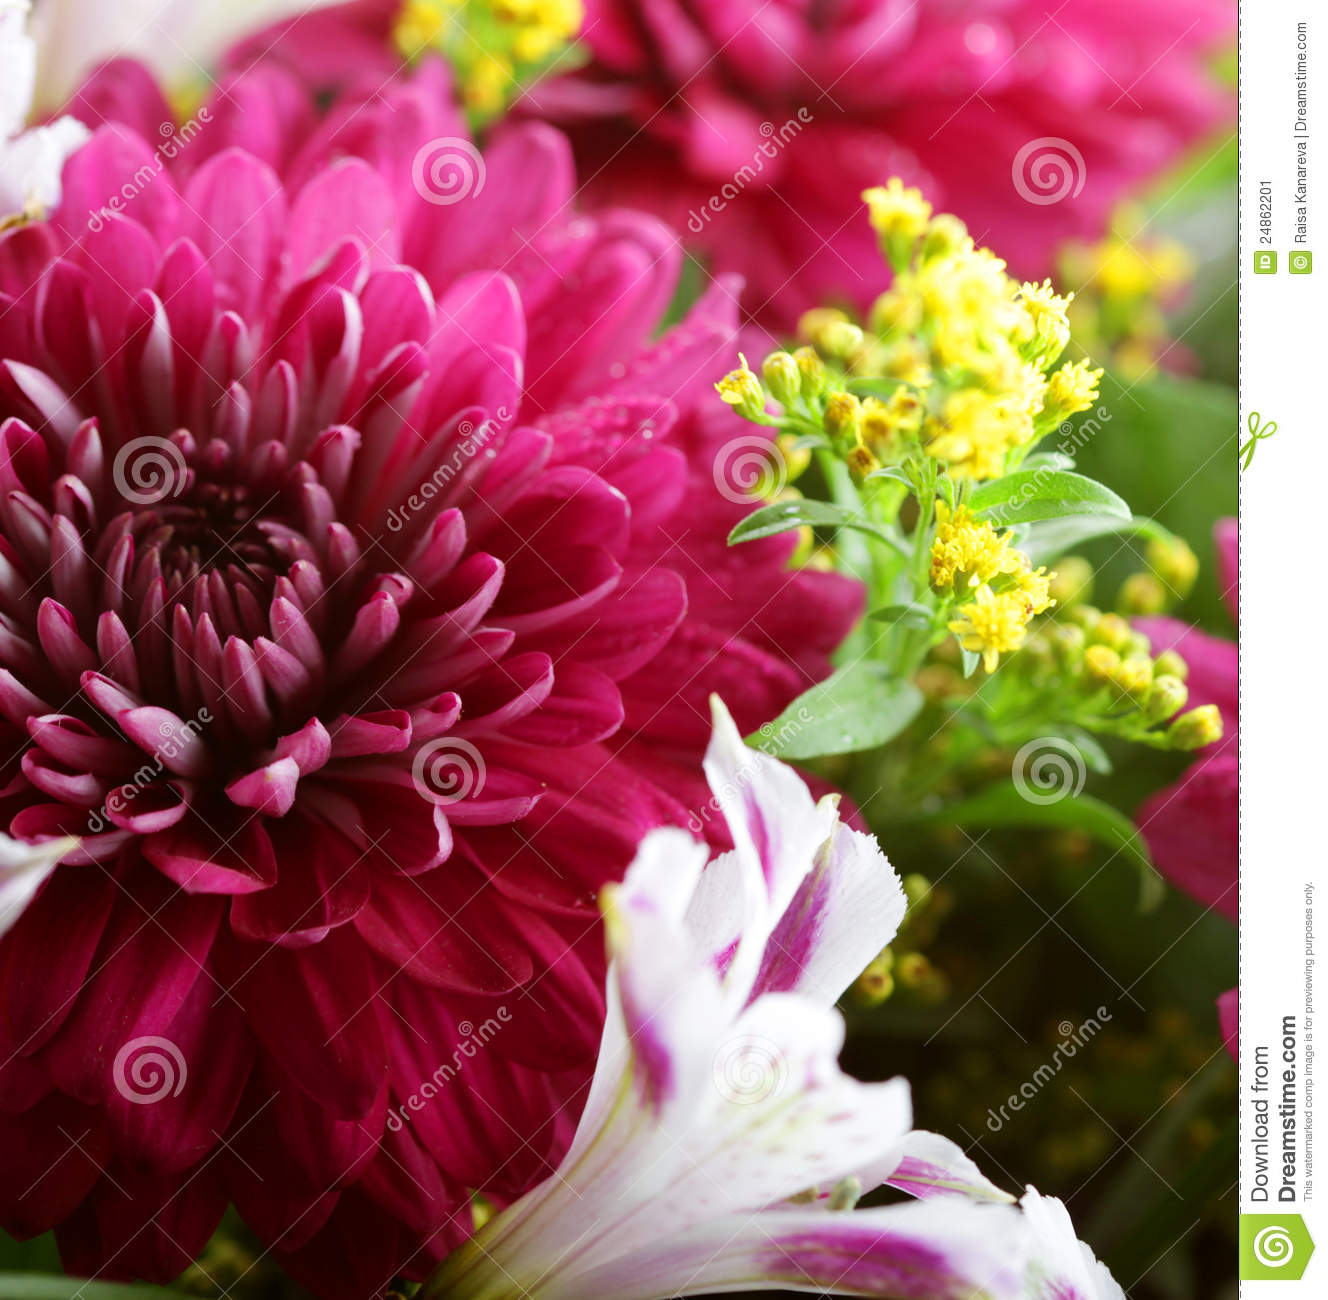 Bouquet with a lot of different flowers stock image for A lot of different flowers make a bouquet